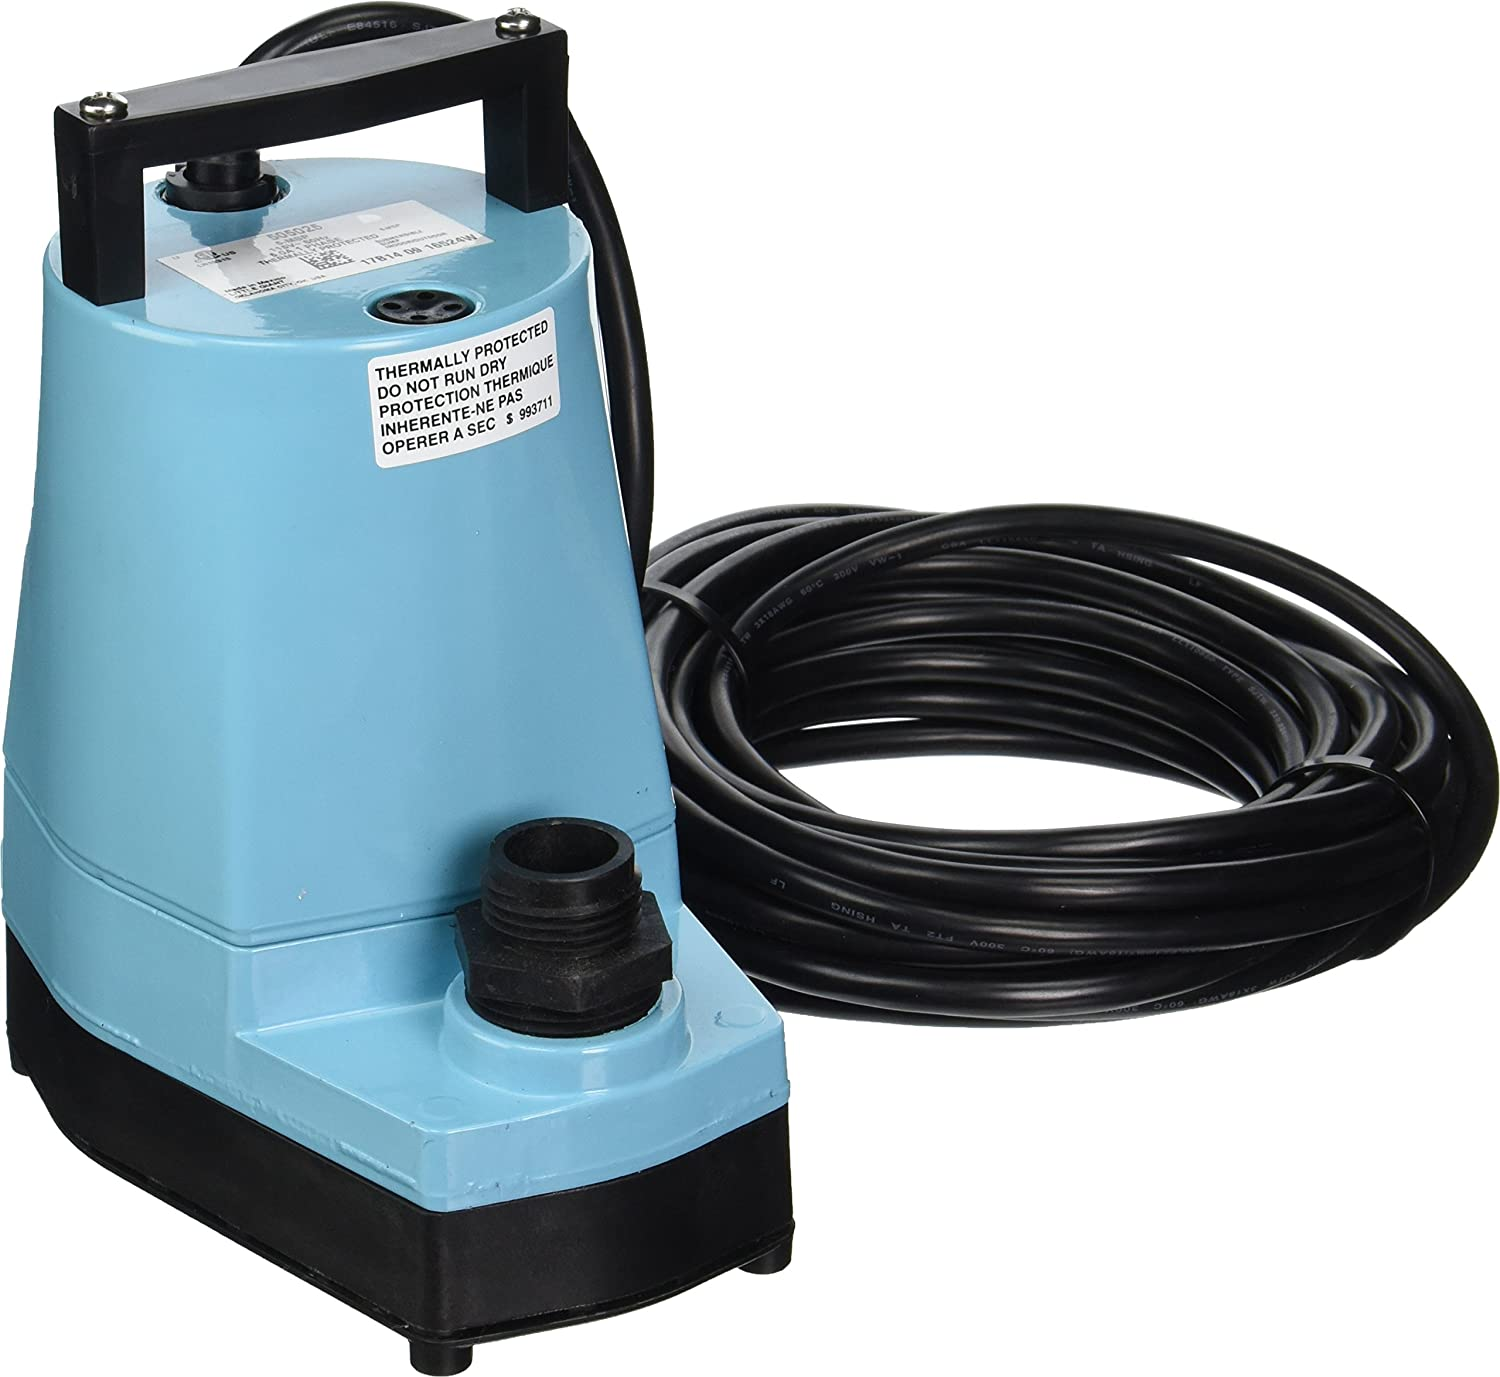 Little Giant 505025 1/6 HP Submersible Utility Pump, 5-MSP 115 Volt 1200 GPH